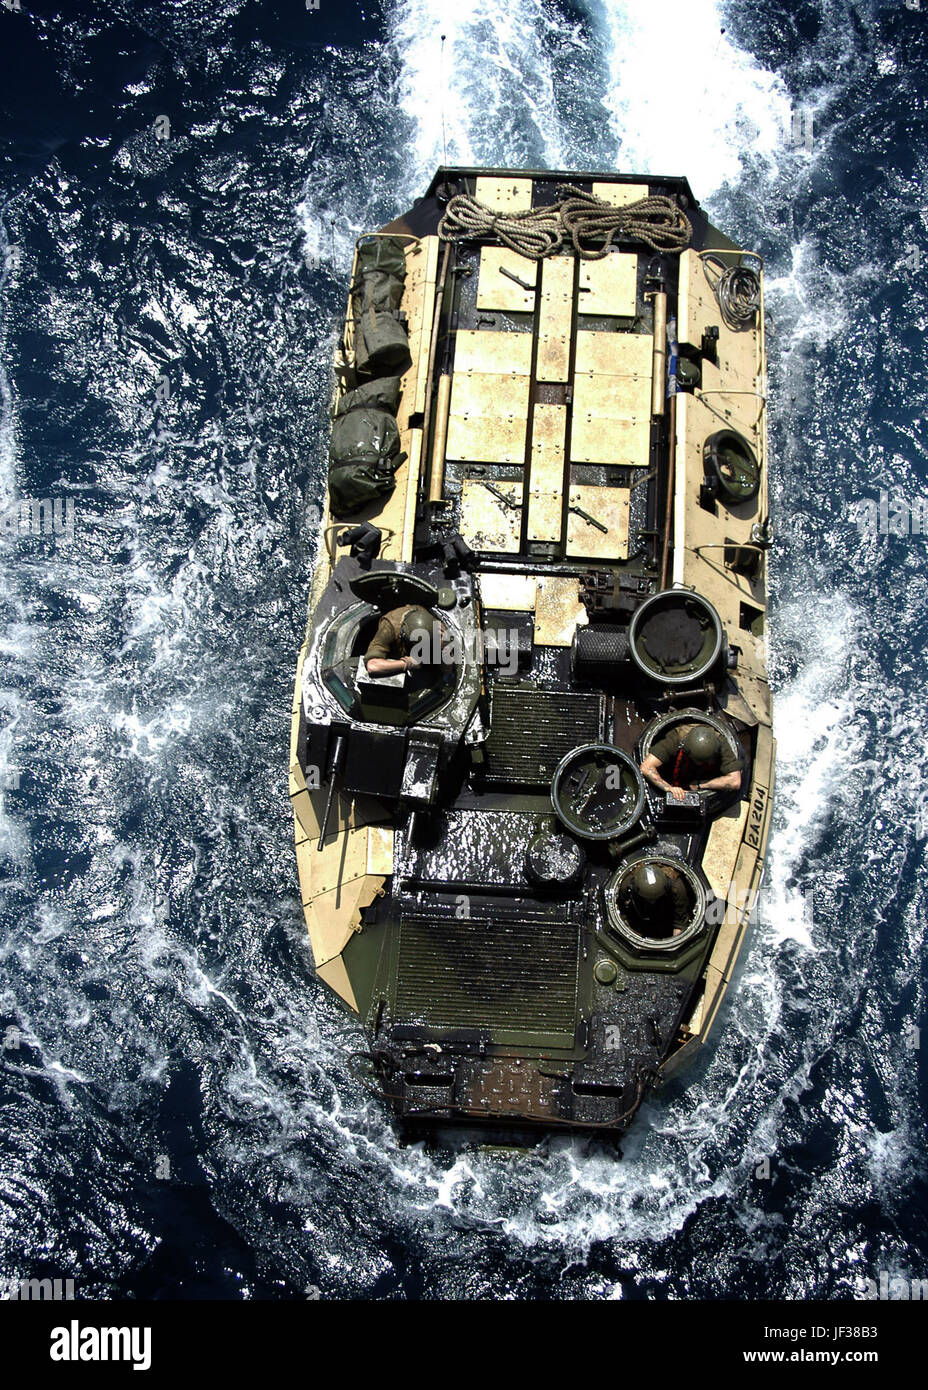 050723-N-5313A-118  	A Marine Amphibious Assault Vehicle maneuvers while preparing to enter the well deck aboard Stock Photo